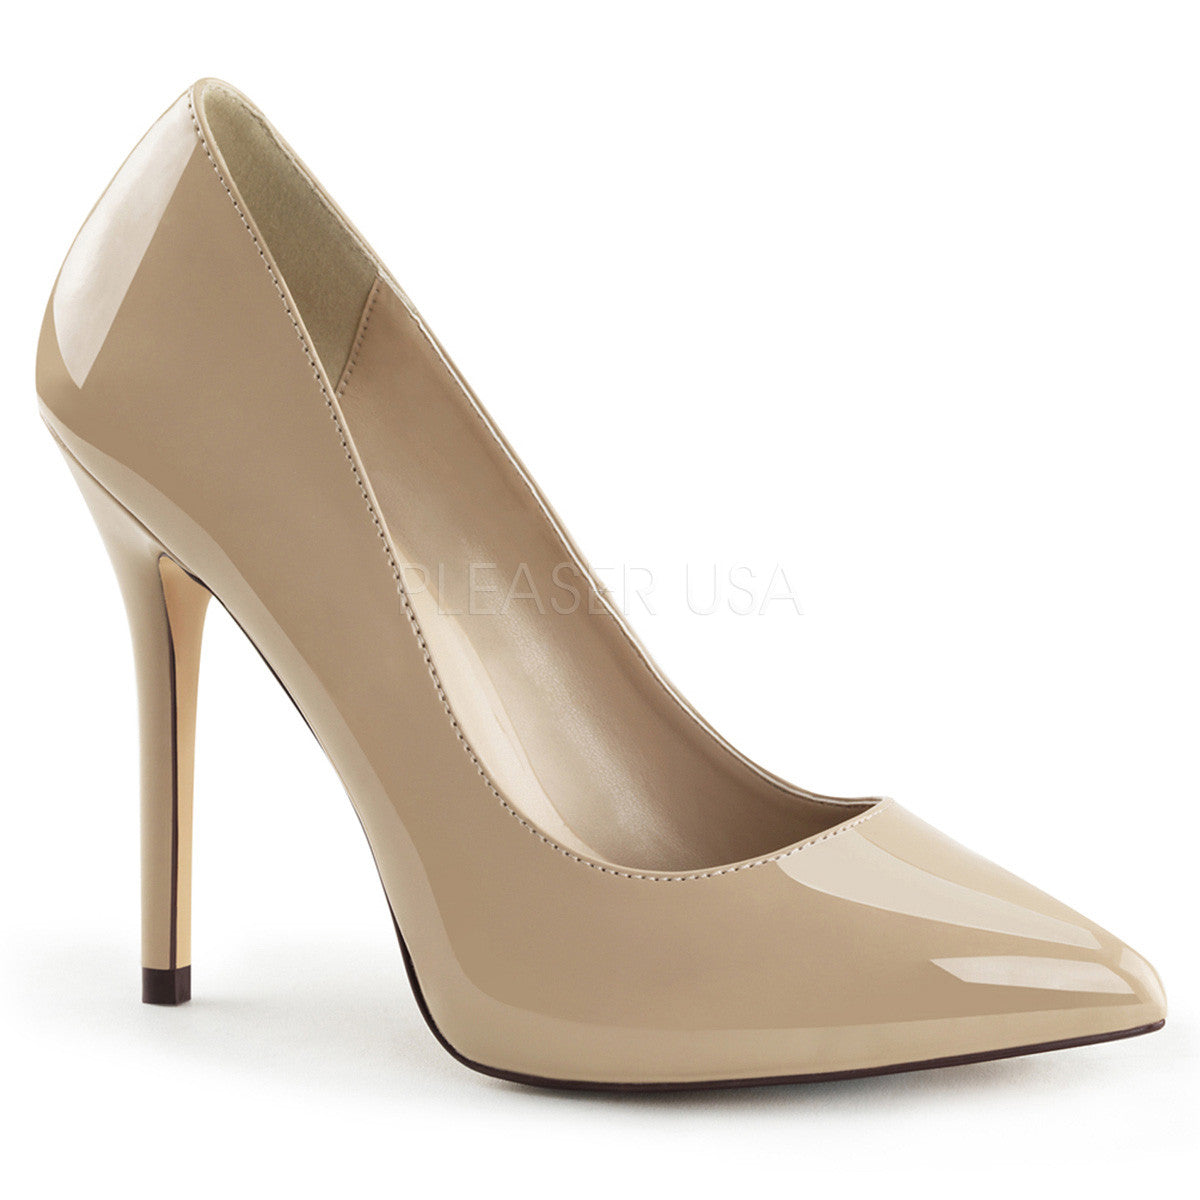 PLEASER AMUSE-20 Cream Pat Pumps - Shoecup.com